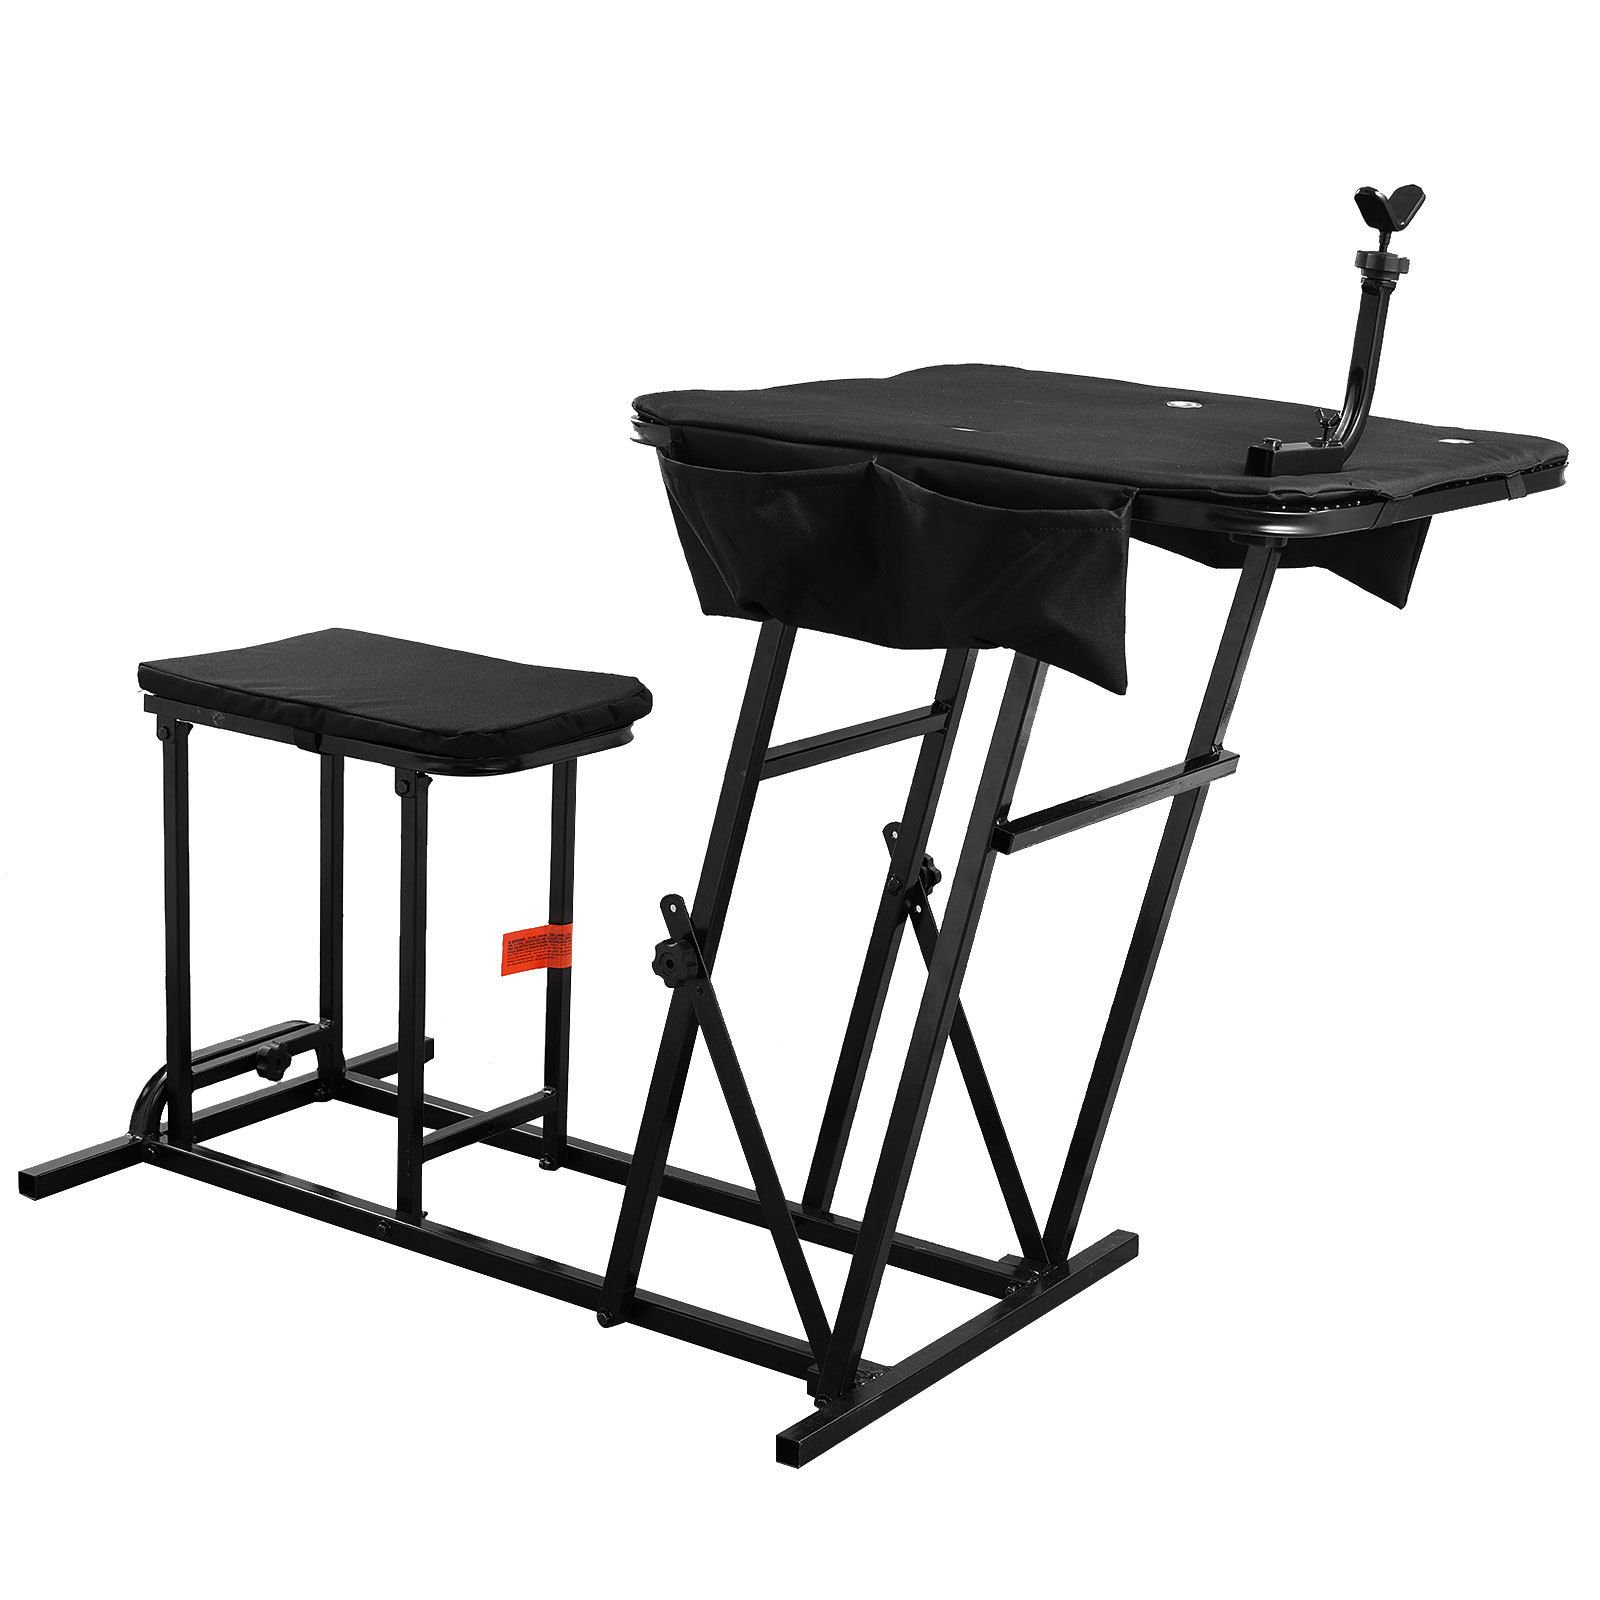 Youzee Shooting Hunting Table Bench Rest Range Portable Accuracy Rifle Chair Seat Field